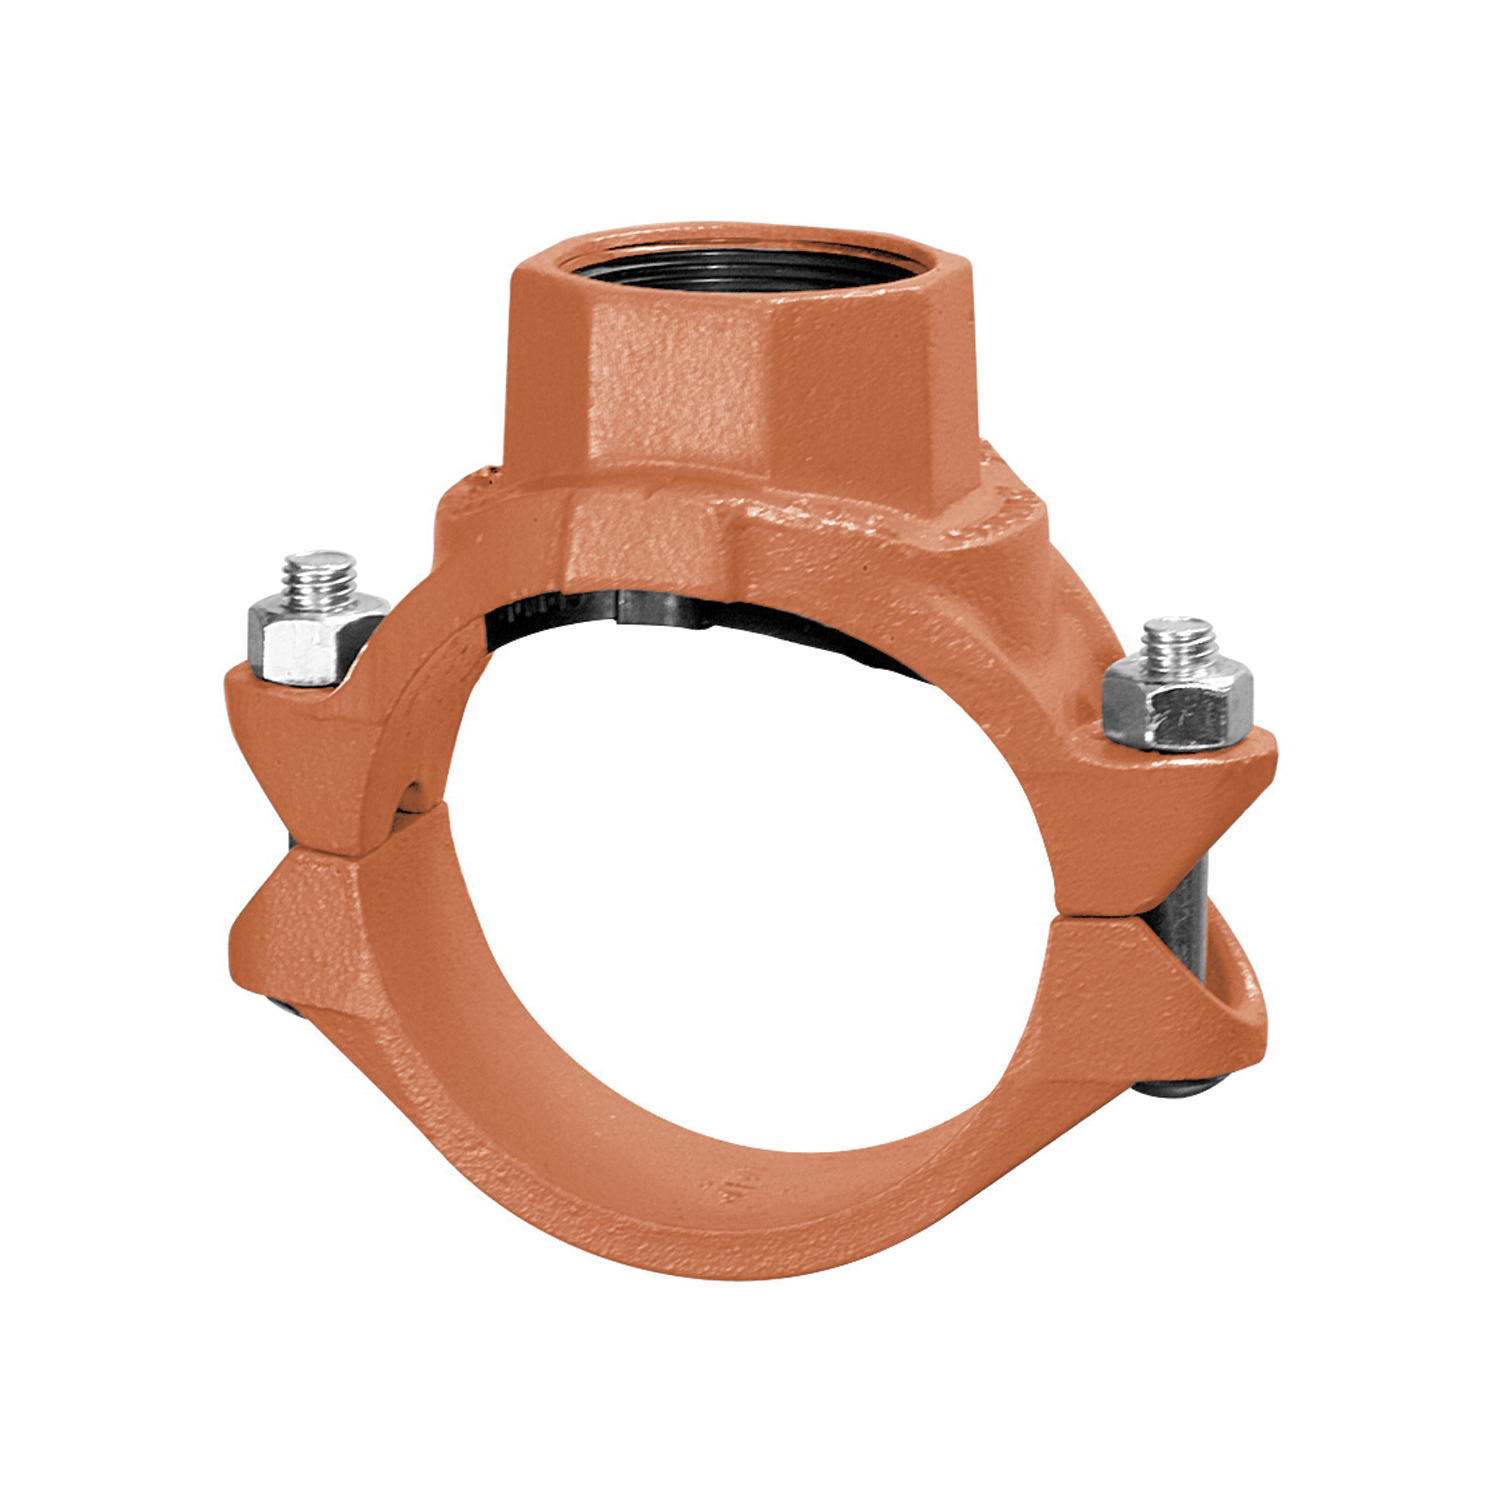 Gruvlok® 0390171106 FIG 7045 Clamp-T Branch Outlet, 2-1/2 x 1-1/2 in, FNPT Connection, Ductile Iron Clamp, Rust Inhibiting Orange Painted